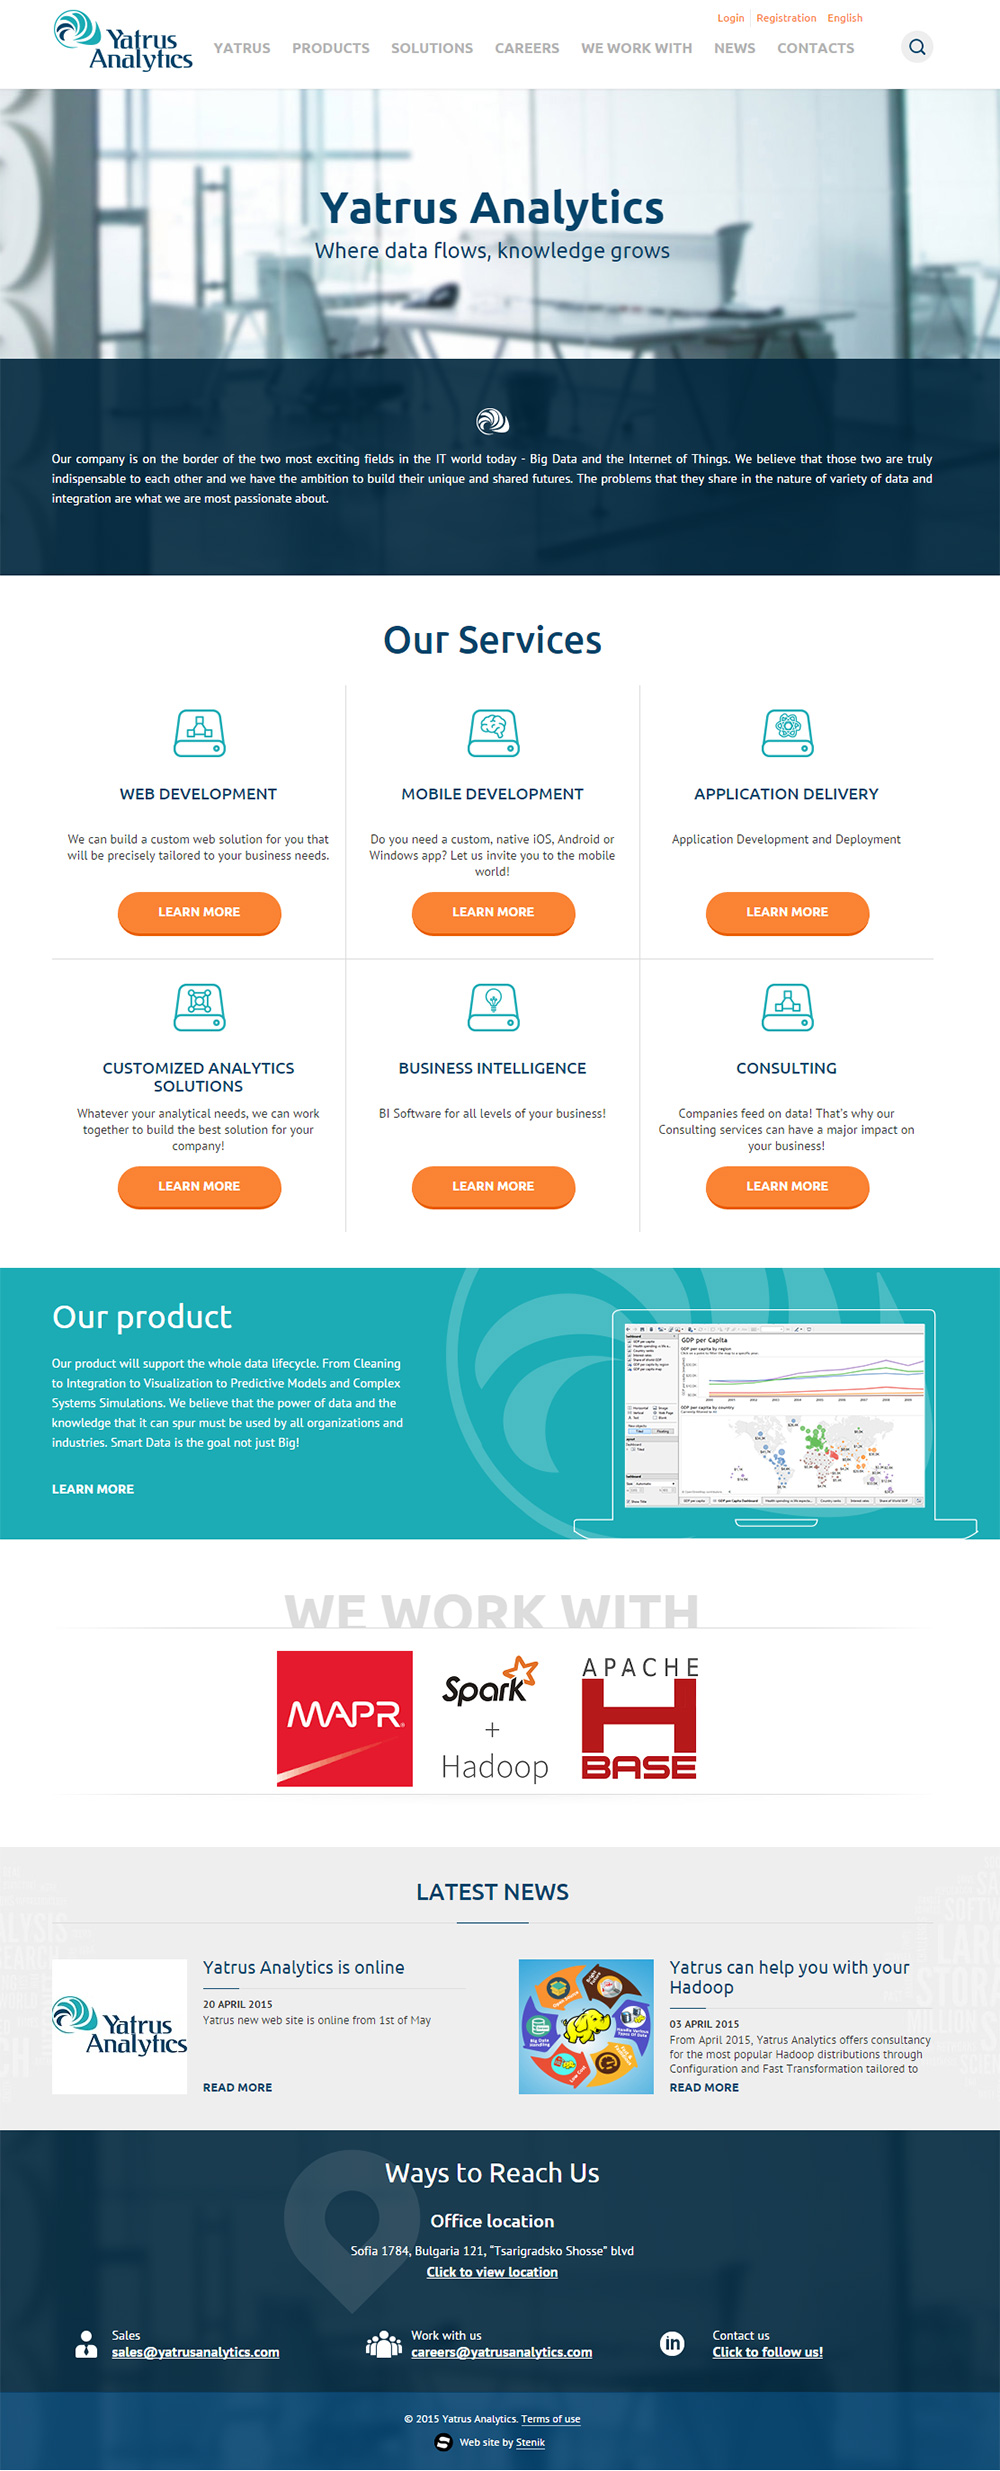 Corporate website for Yatrus Analytics, Yatrus Analytics - Web Sites, Stenik, StenikCMS